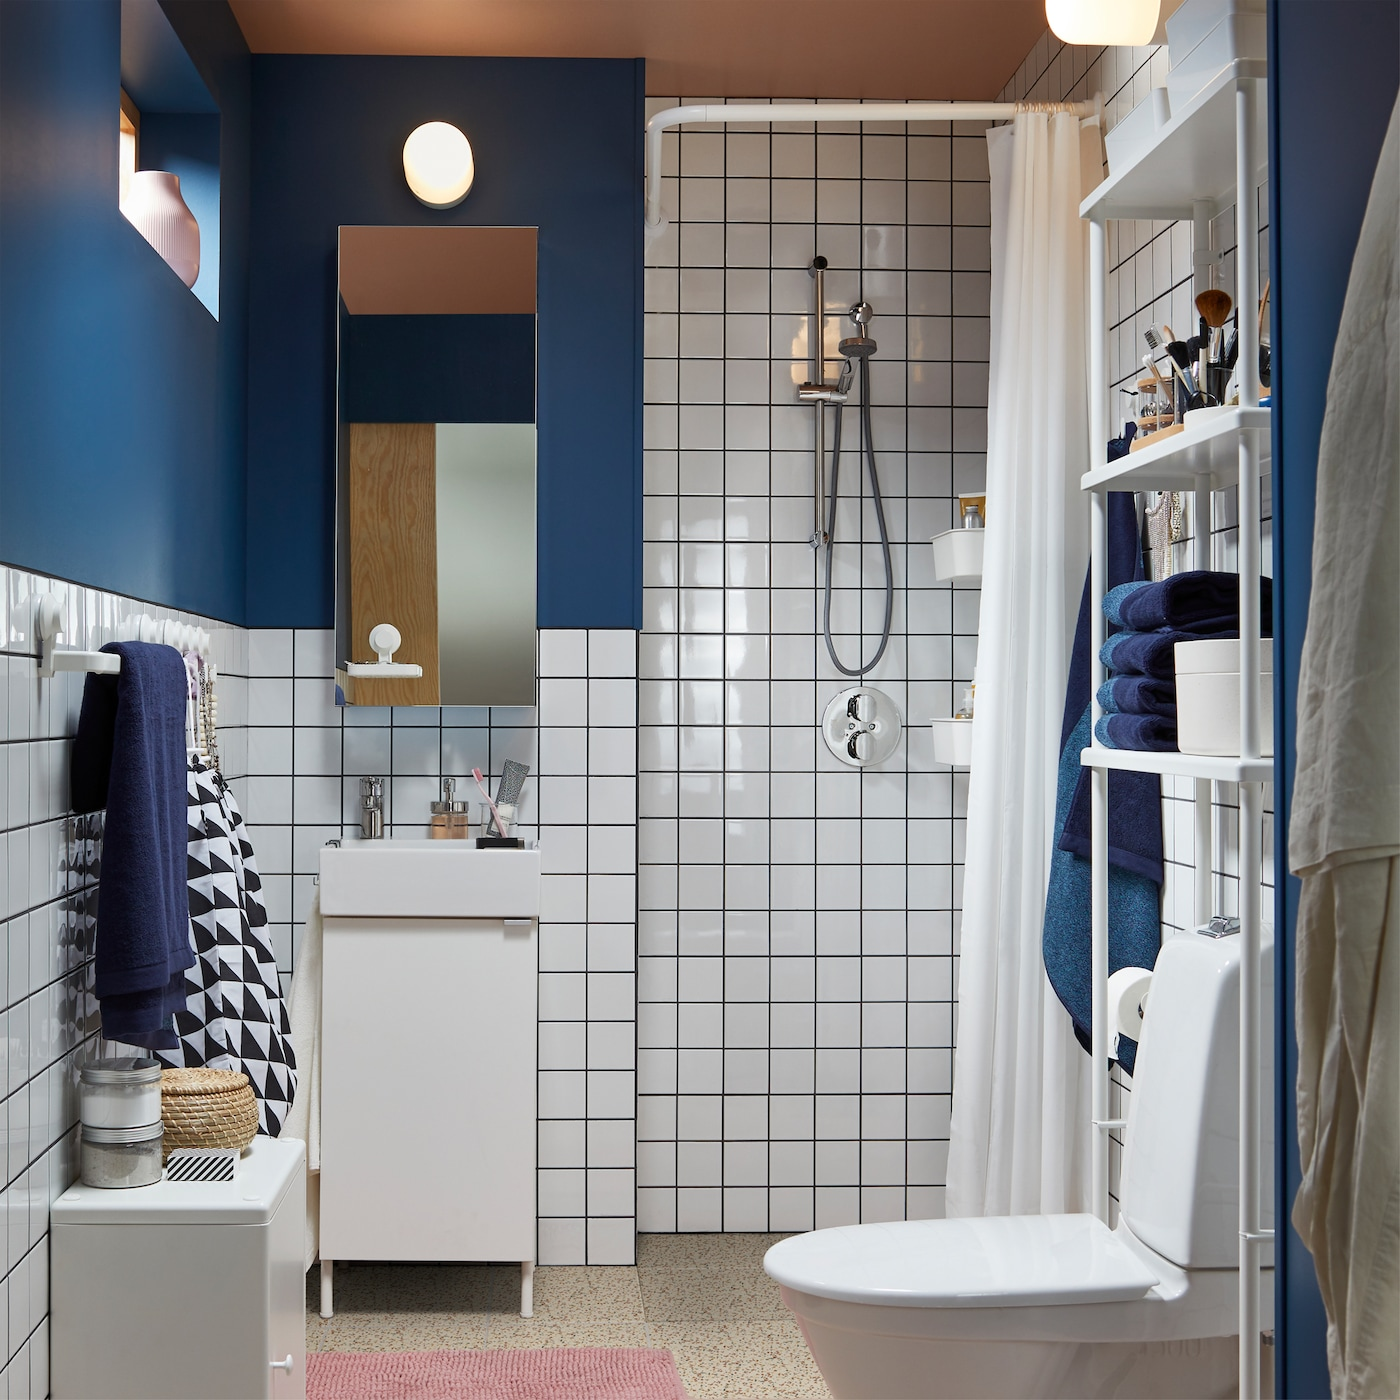 A small bathroom with white tiles and dark blue walls includes a shower, bathroom vanity, mirror cabinet, and blue towels.